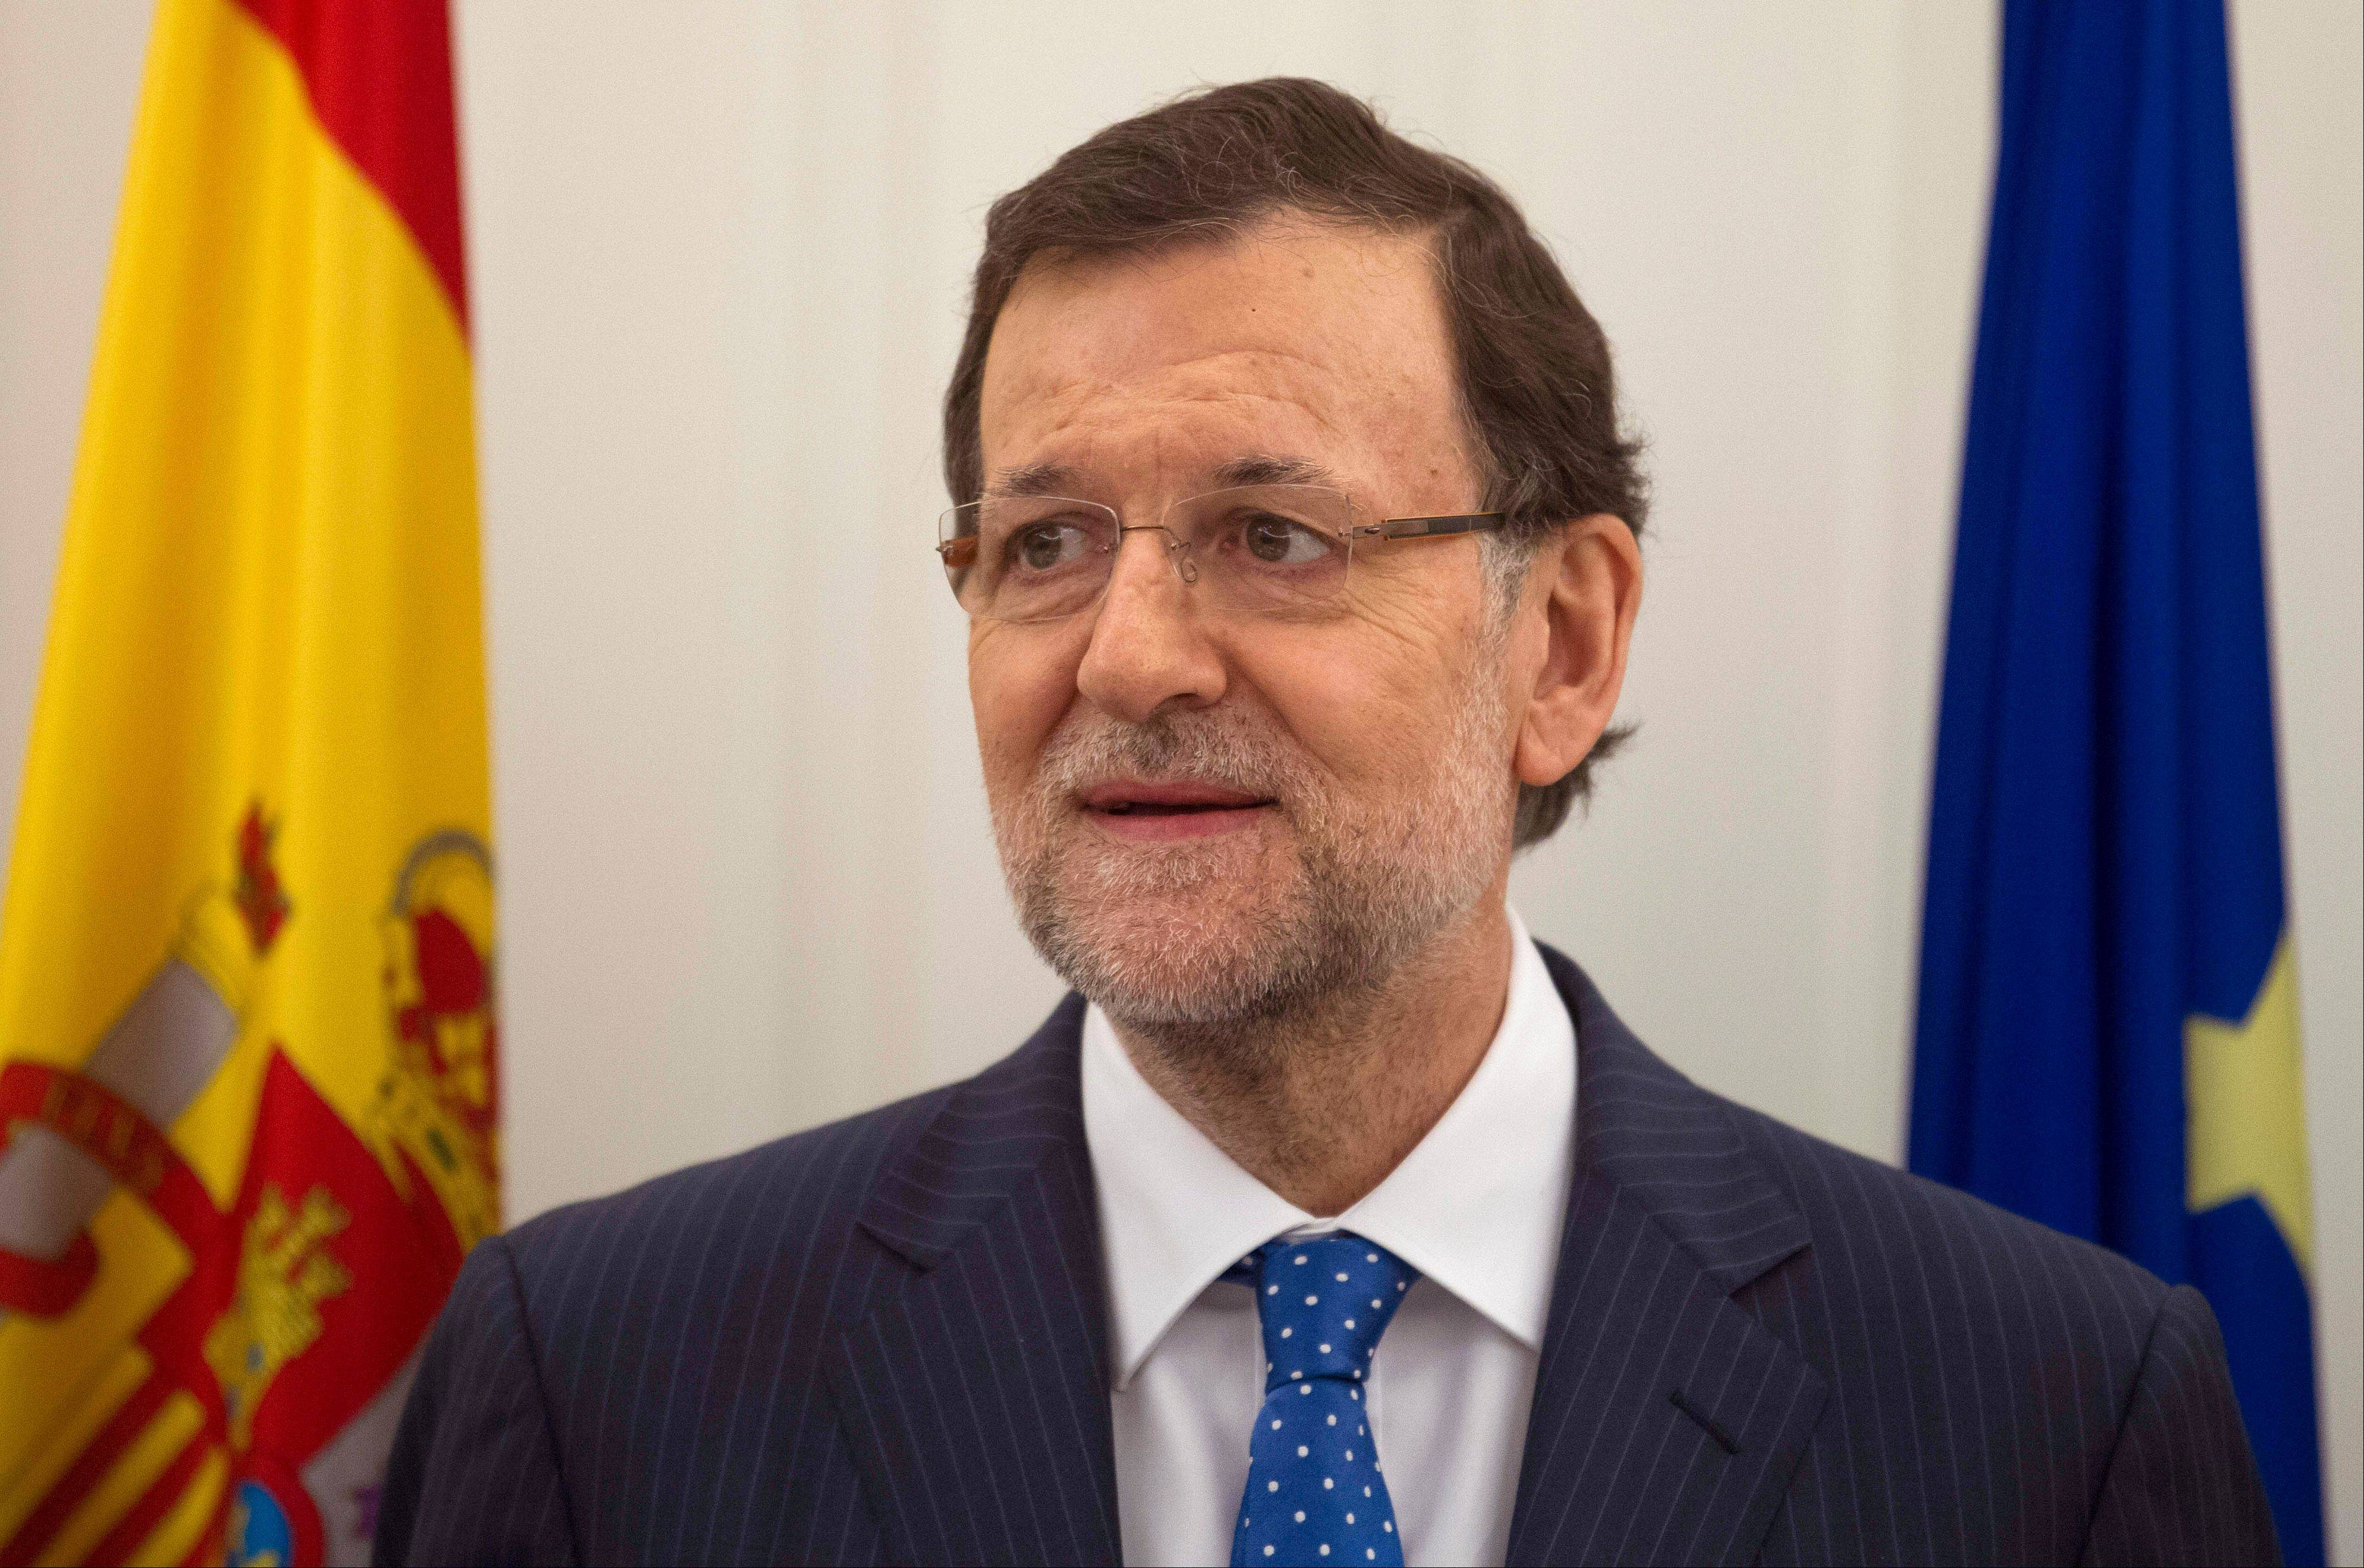 Conservative Spanish Prime Minister Mariano Rajoy is certain to face a barrage of questions in a news conference following a newspaper publication of alleged text message exchanges between him and a now jailed former party treasurer that have prompted opposition demands for the premier to resign.